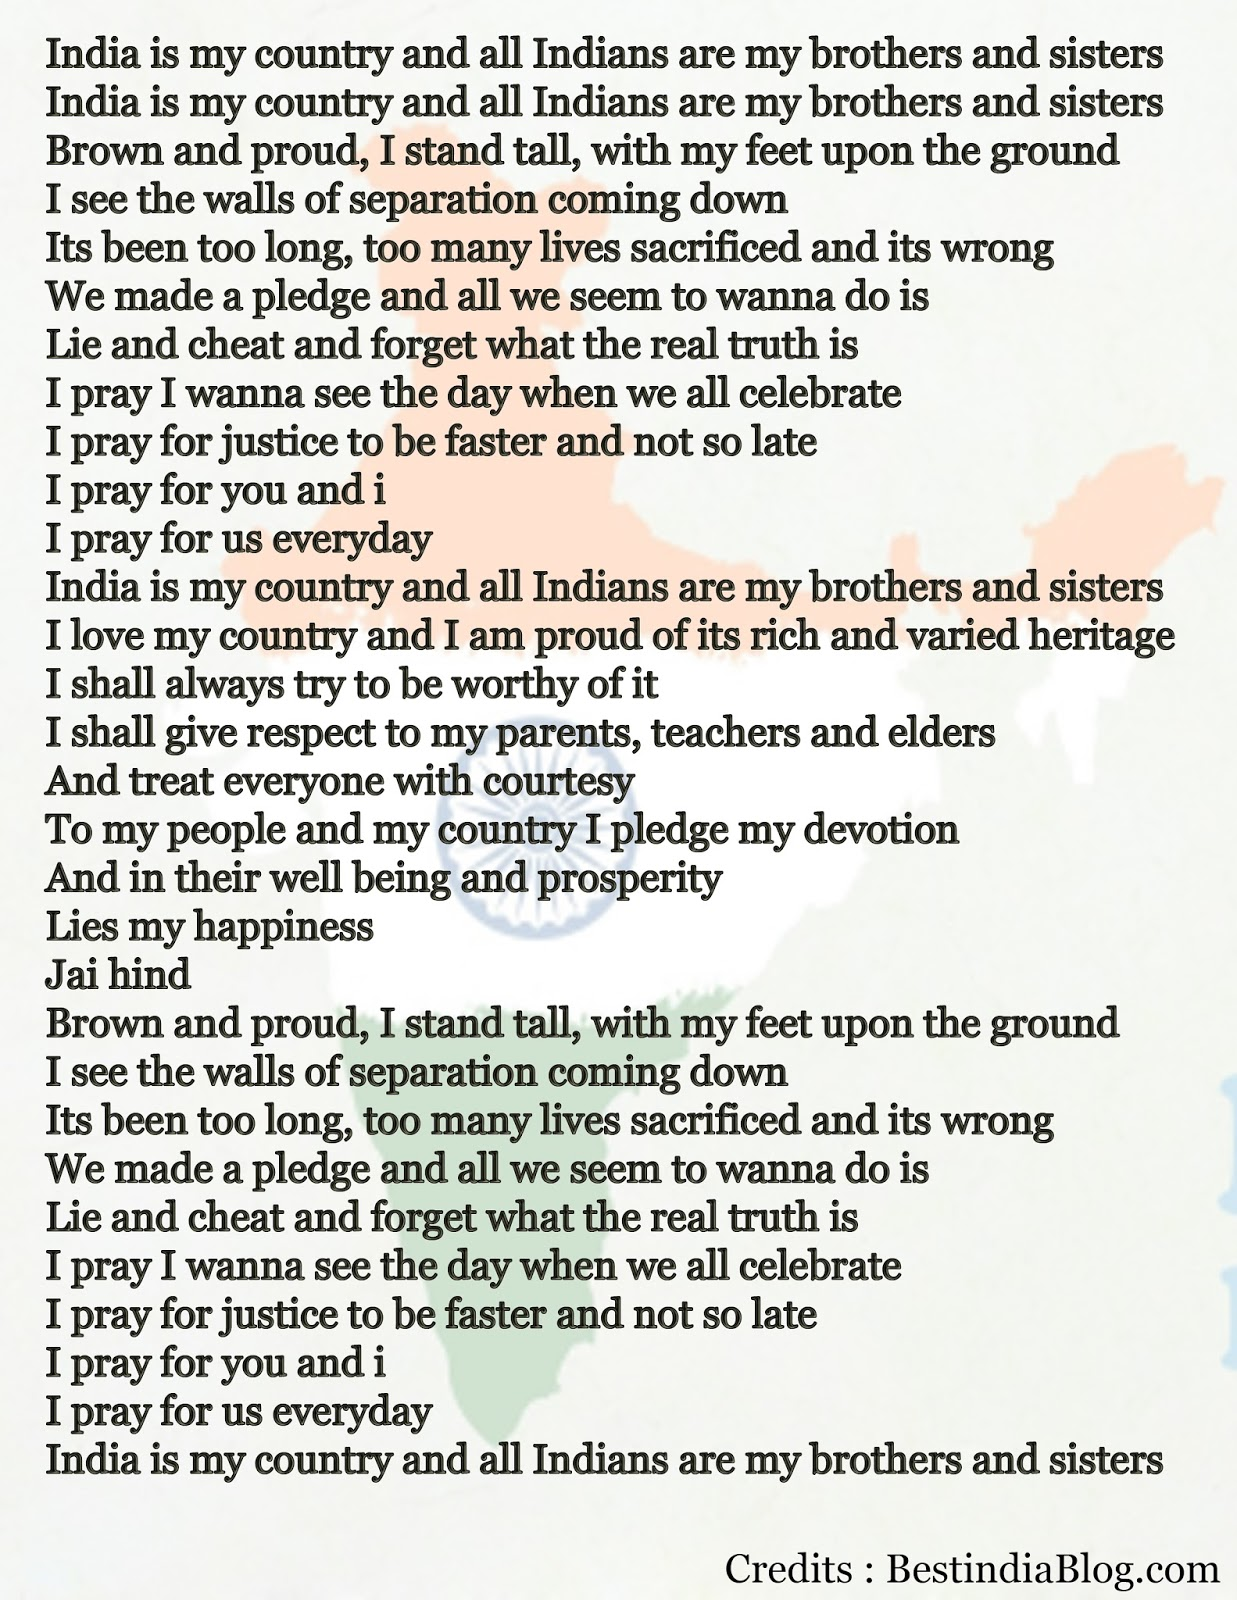 Indian Independence Essay - Words